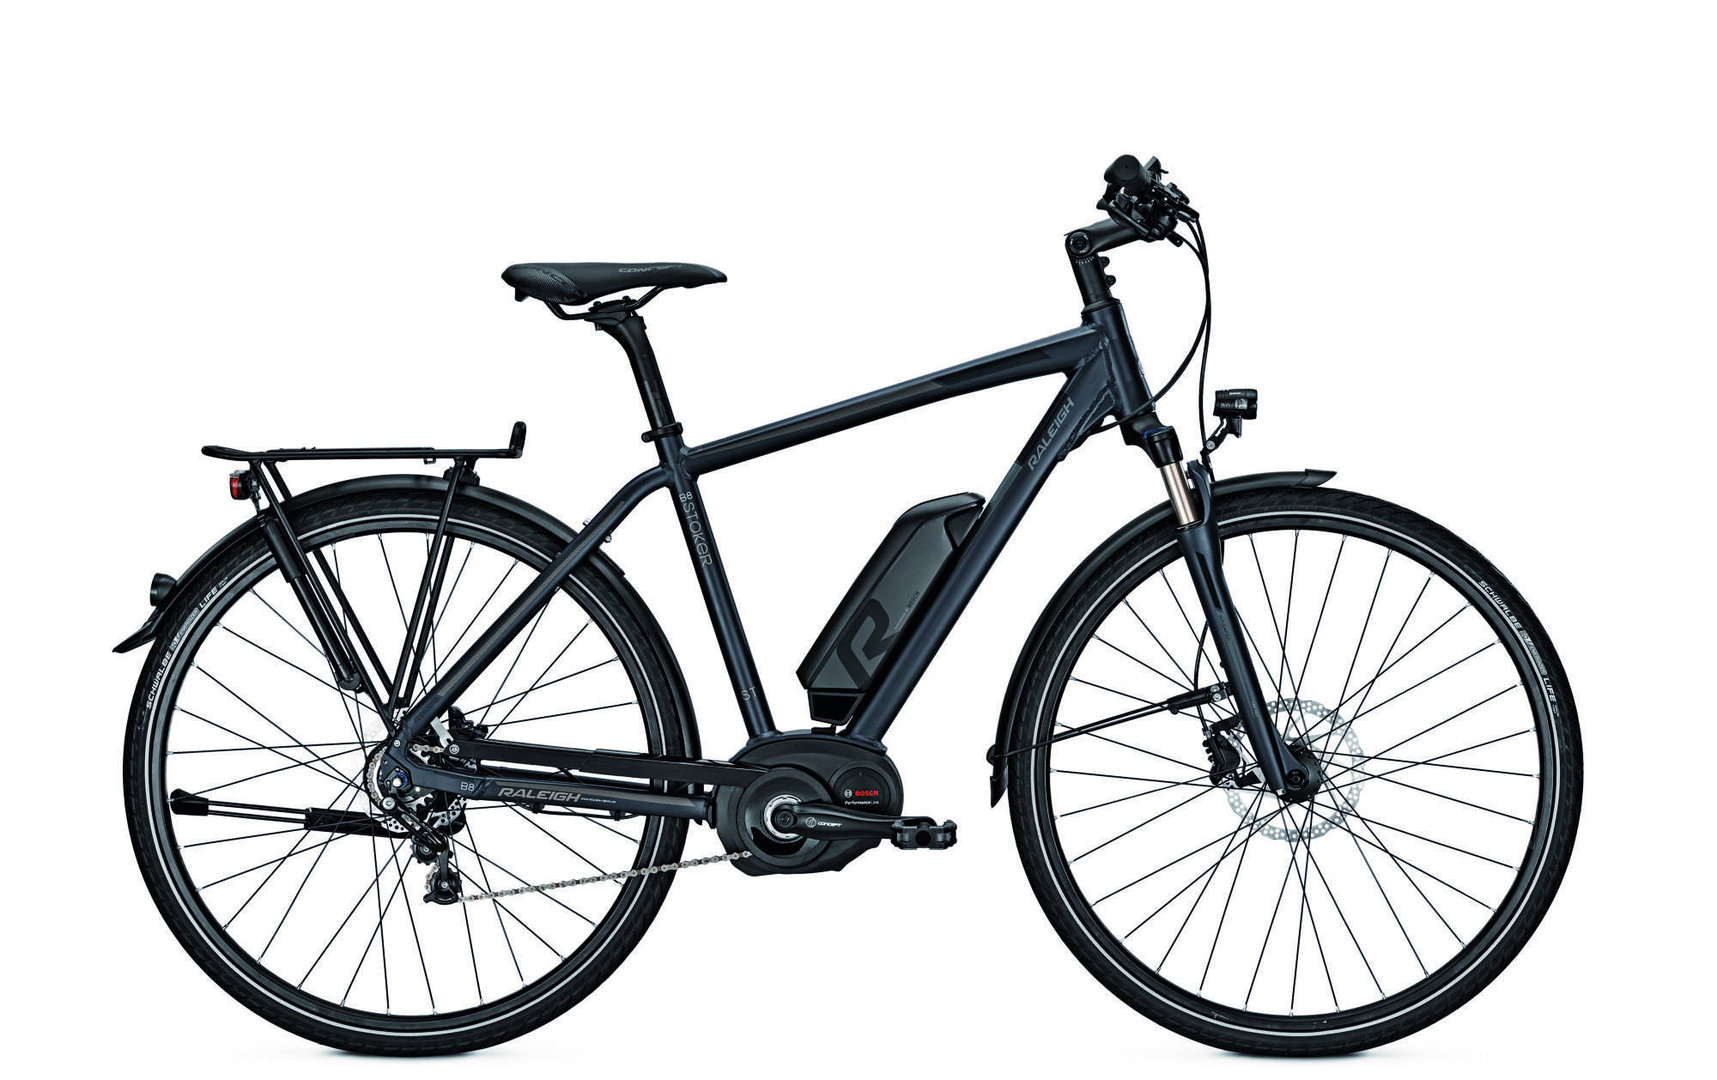 raleigh stoker b8 pro elektro fahrrad trekking ebike 2017. Black Bedroom Furniture Sets. Home Design Ideas